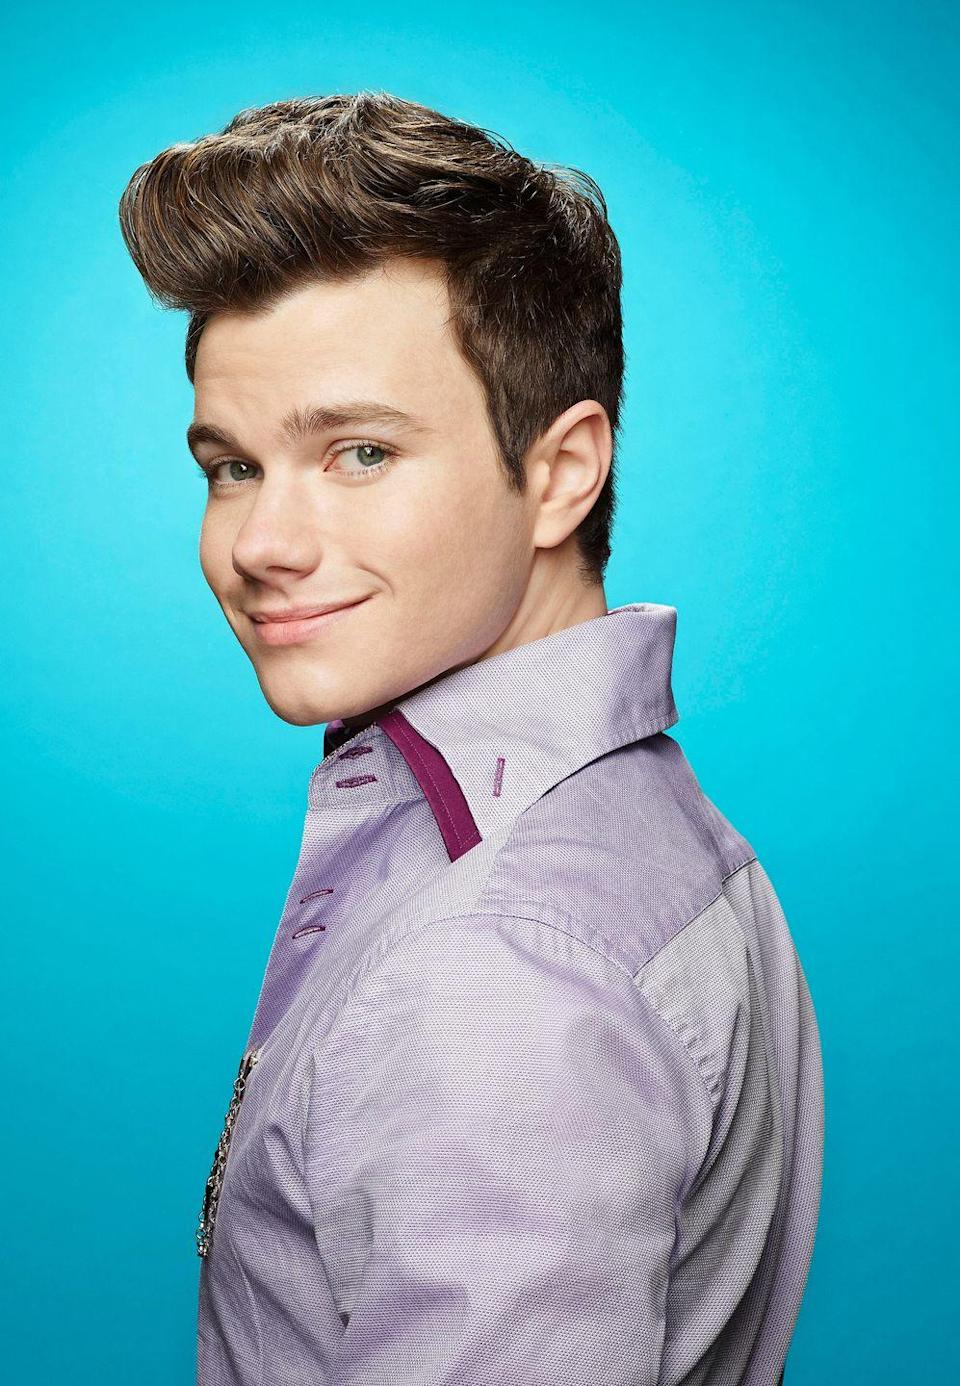 """<p>After auditioning for the role of Artie, Chris Colfer wooed <em>Glee'</em>s producers and the role of Kurt was born. According to Colfer, in his first contract, his character is <a href=""""https://www.hollywoodreporter.com/live-feed/glee-chris-colfer-darren-criss-bio-channel-special-305551"""" rel=""""nofollow noopener"""" target=""""_blank"""" data-ylk=""""slk:listed as Artie 2"""" class=""""link rapid-noclick-resp"""">listed as Artie 2</a> because Kurt had yet to be created.</p>"""